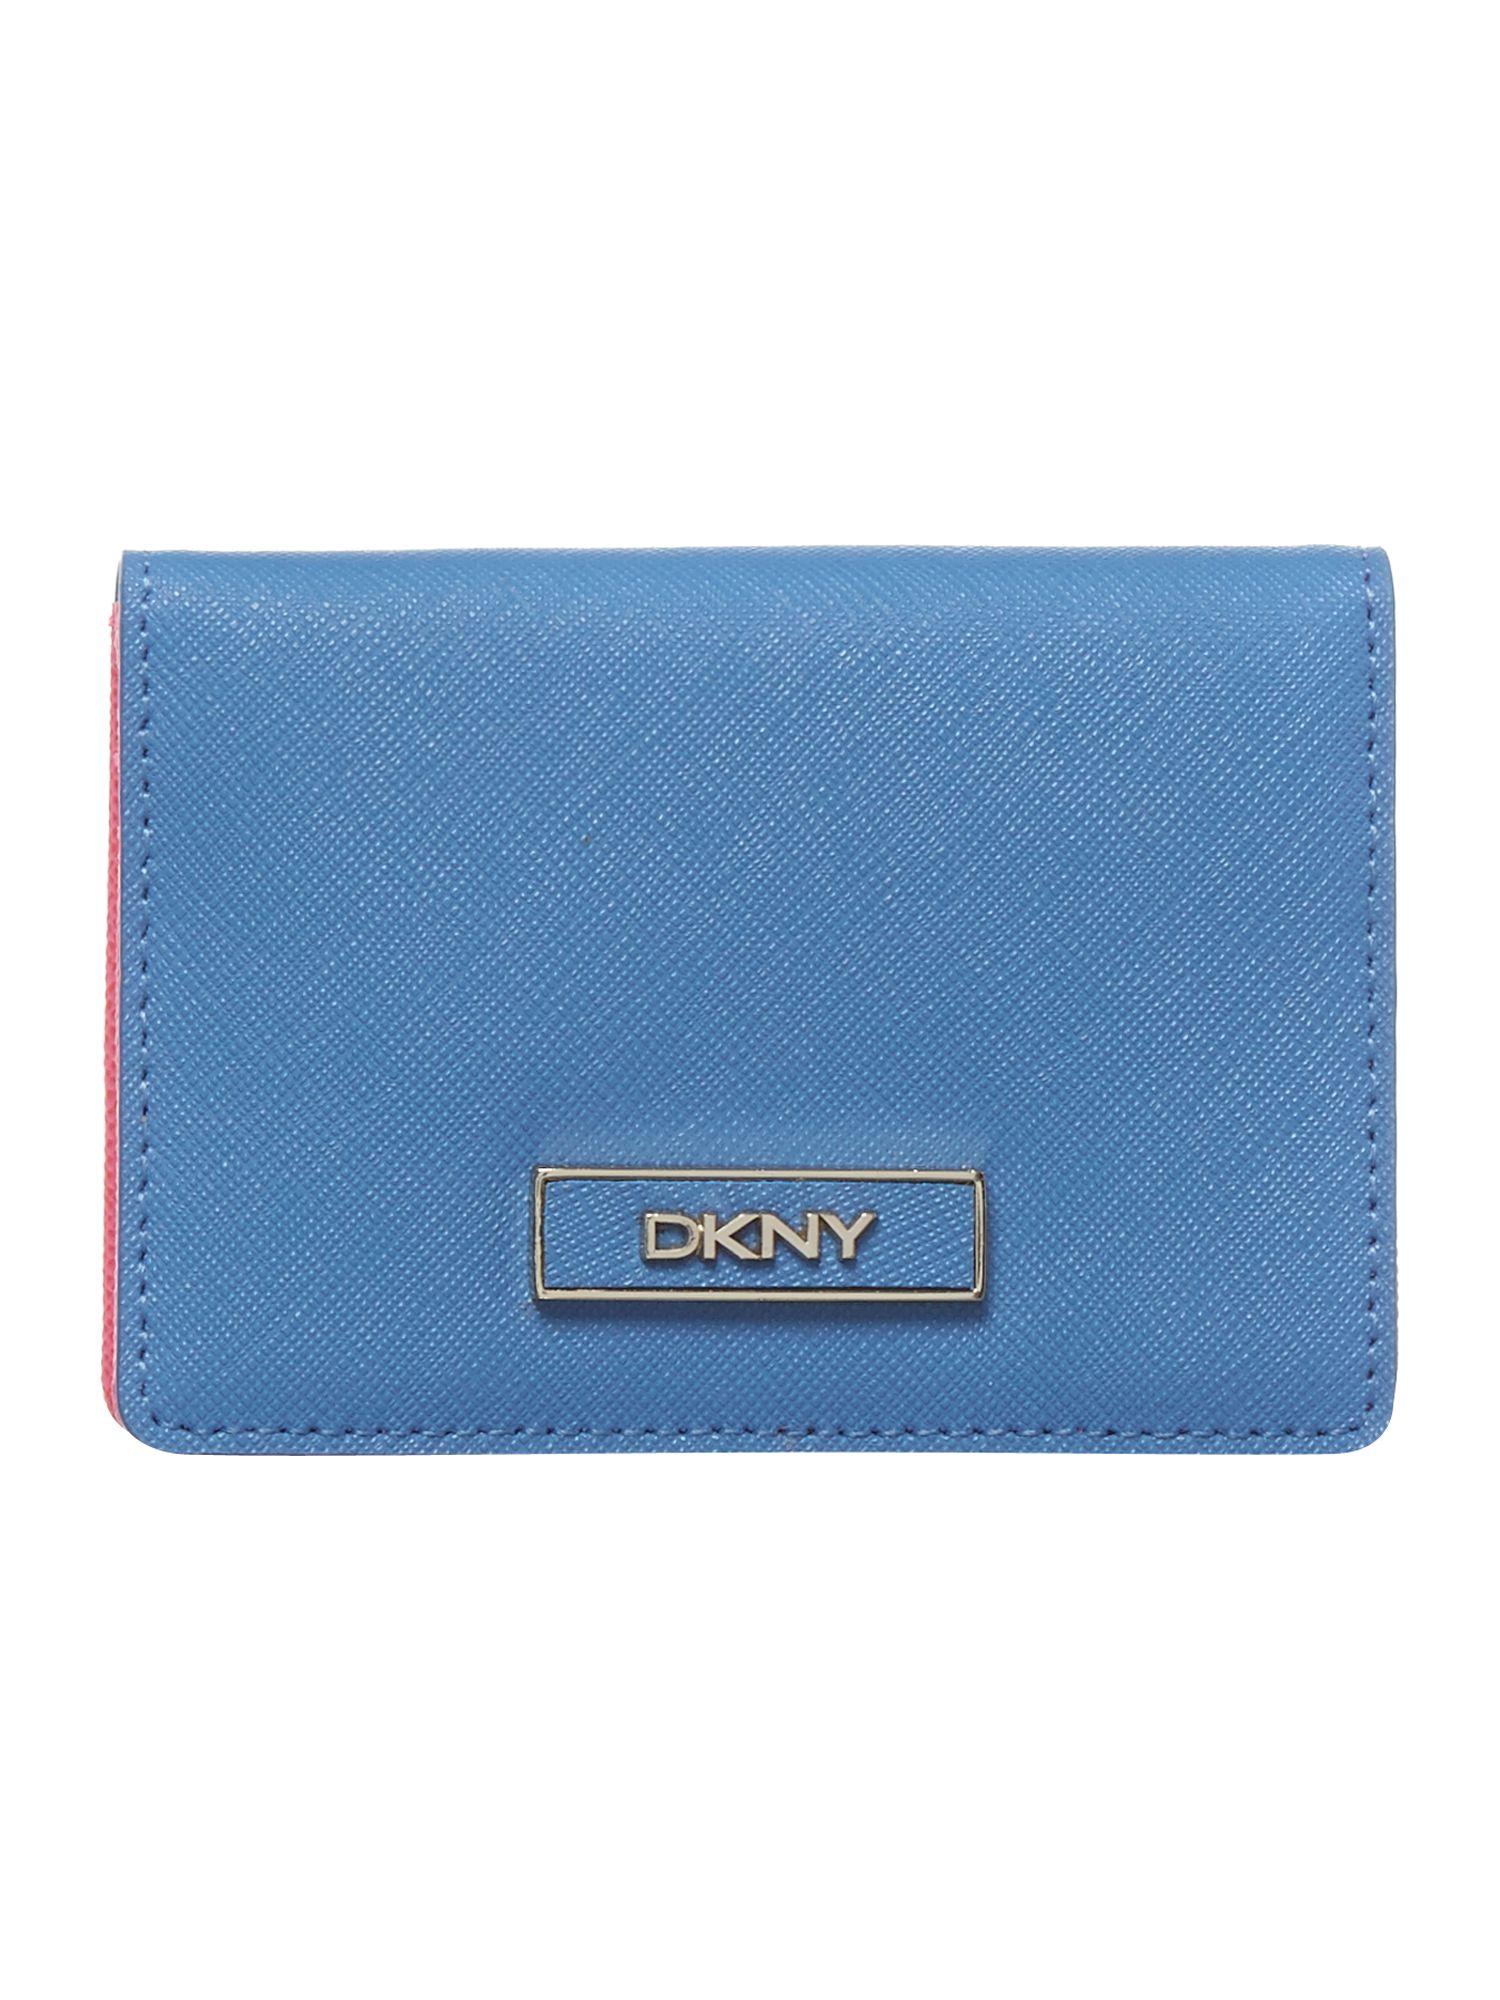 Saffiano blue small card holder